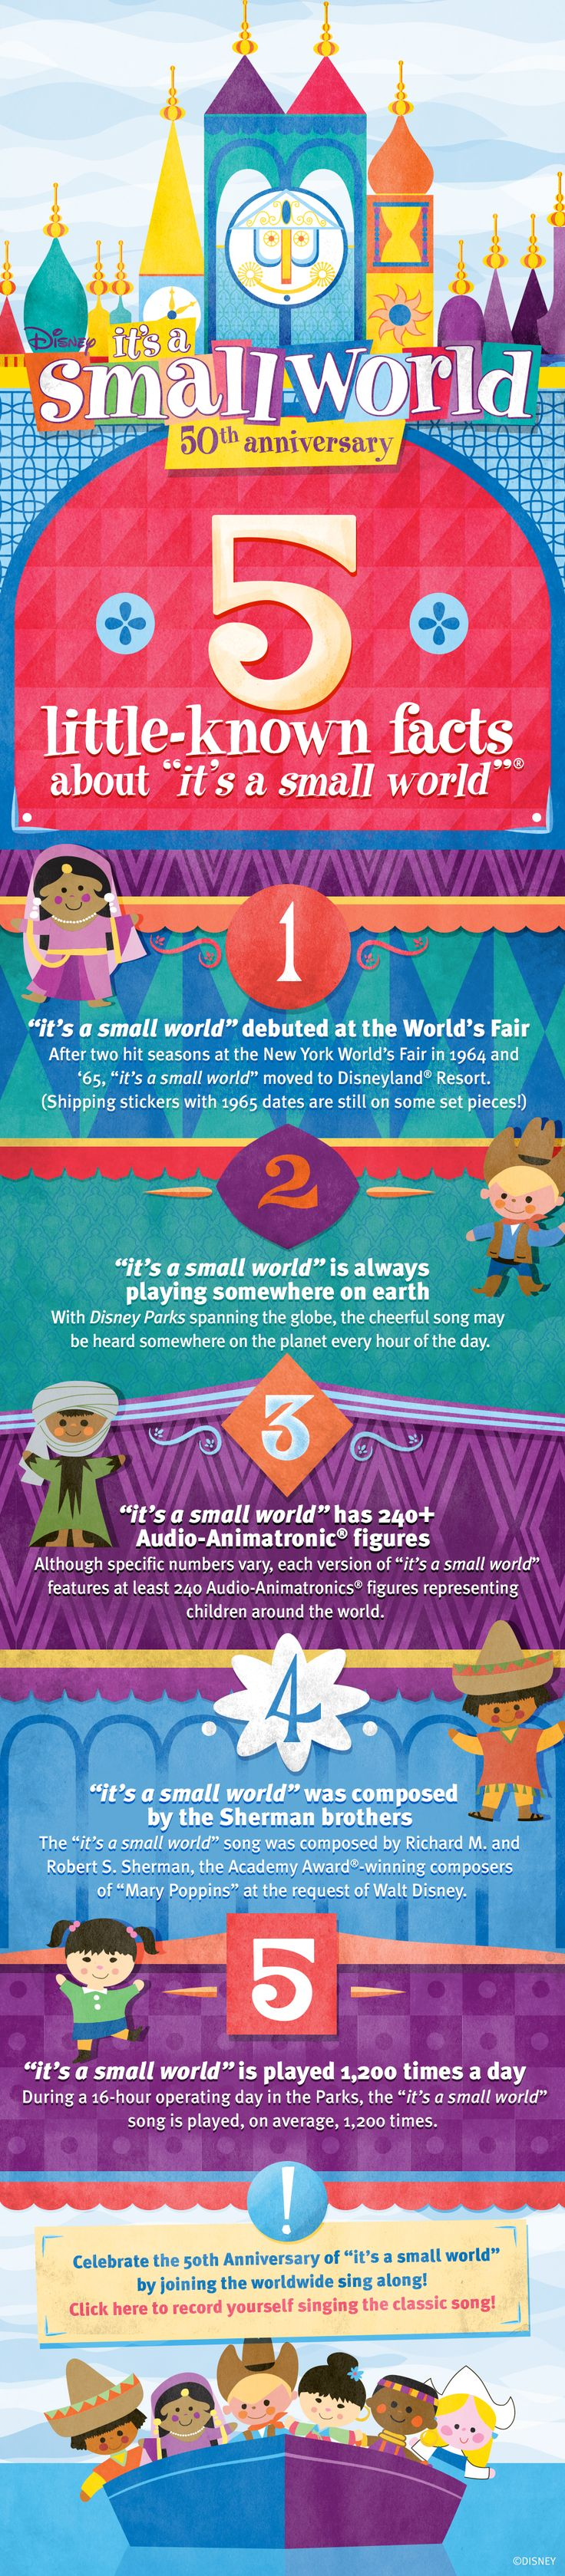 115 best small world 50th anniversary images on pinterest disney 5 little known facts about its a small world celebrate the 50th anniversary publicscrutiny Images